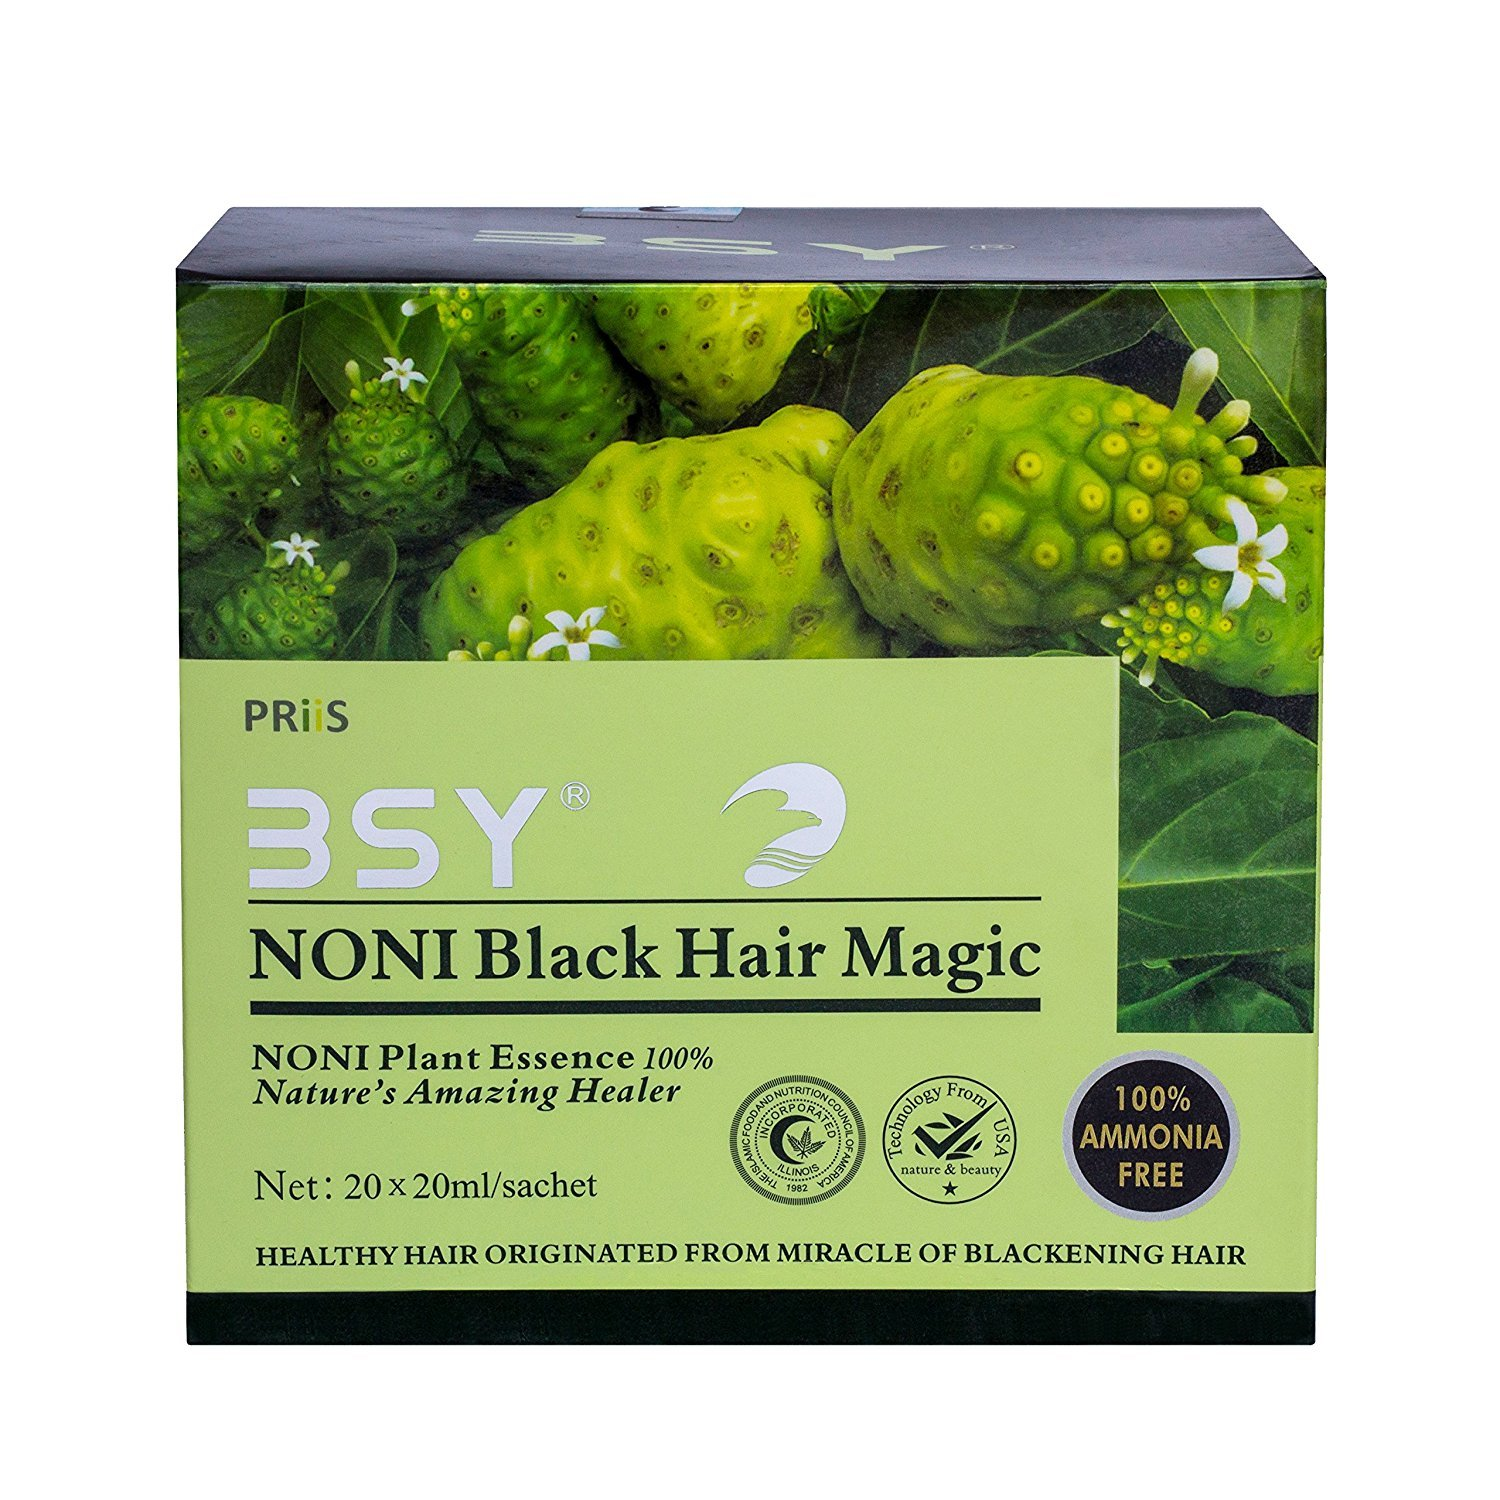 BSY NONI ORIGINAL Black Hair Magic - Hair Dye Shampoo (20x20ml Sachets) by BSY NONI (Image #2)